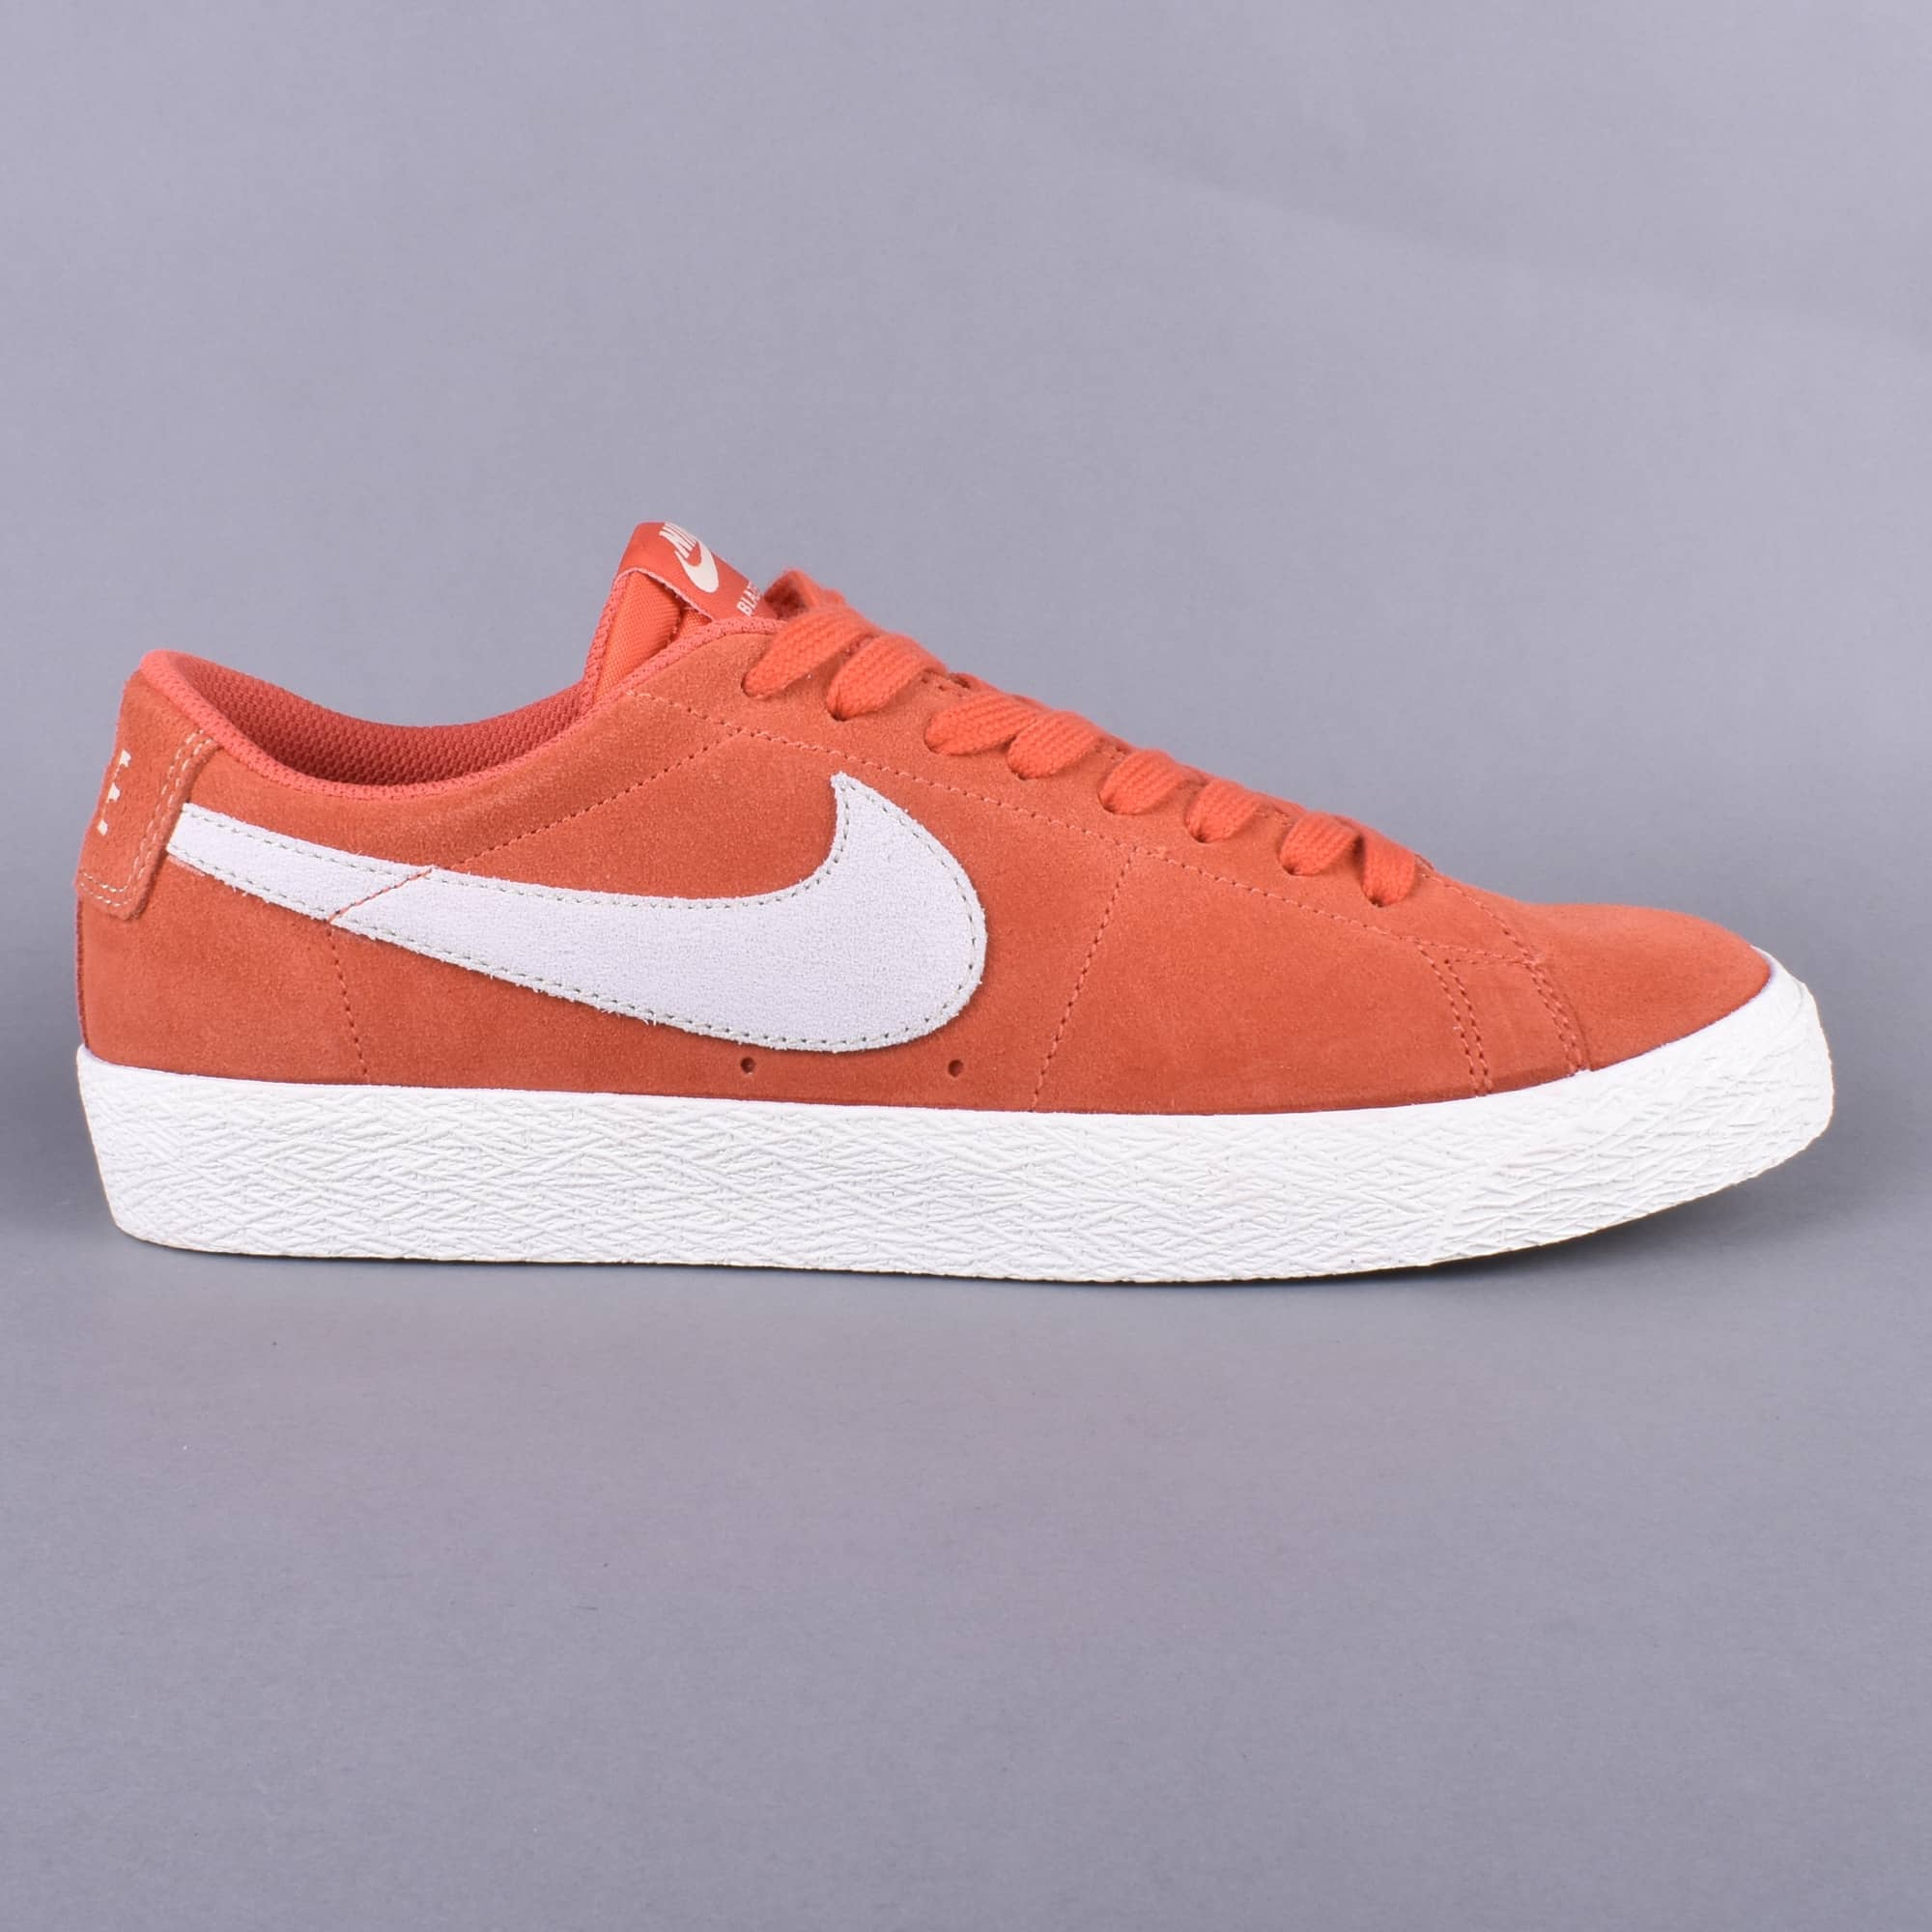 simpatía multitud Dibuja una imagen  Nike SB Zoom Blazer Low Skate Shoes - Vintage Coral/Fossil-Sail - SKATE  SHOES from Native Skate Store UK